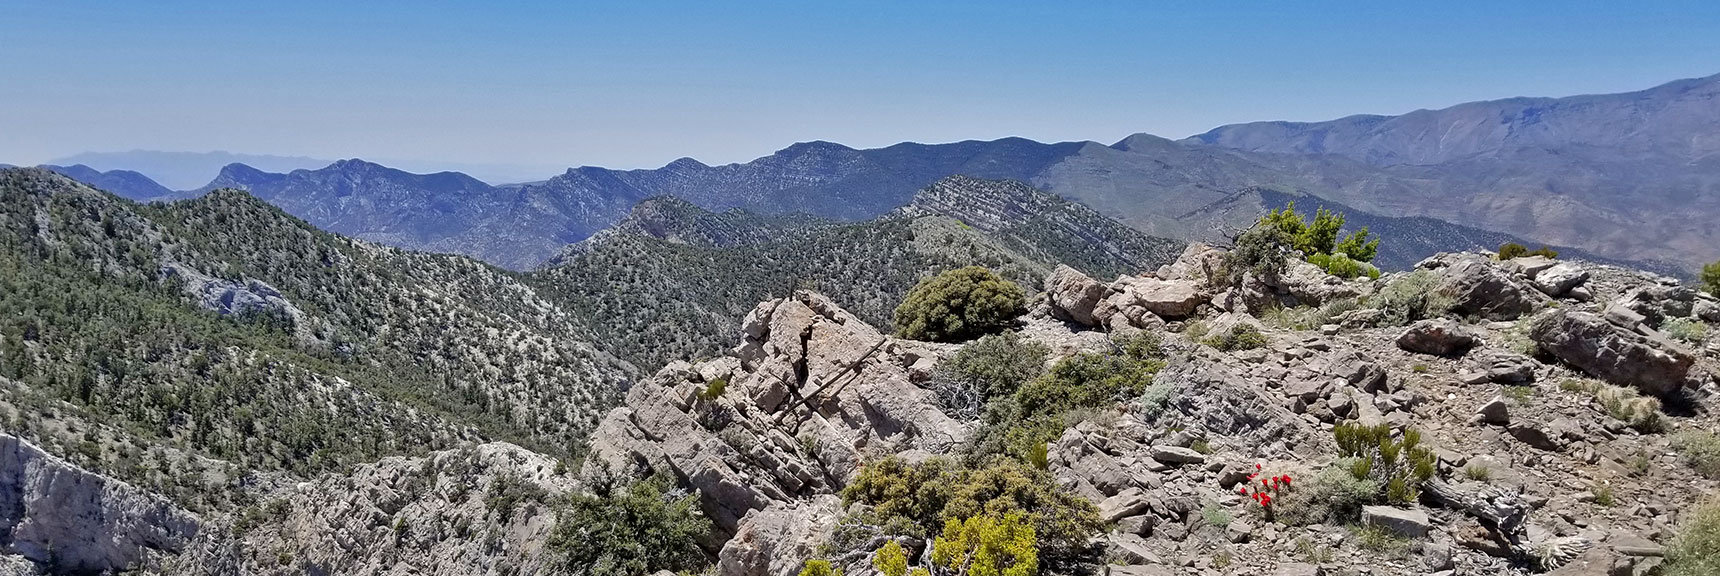 Wilson Ridge on East Side of Lovell Canyon | La Madre Mountain Northern Approach, Nevada